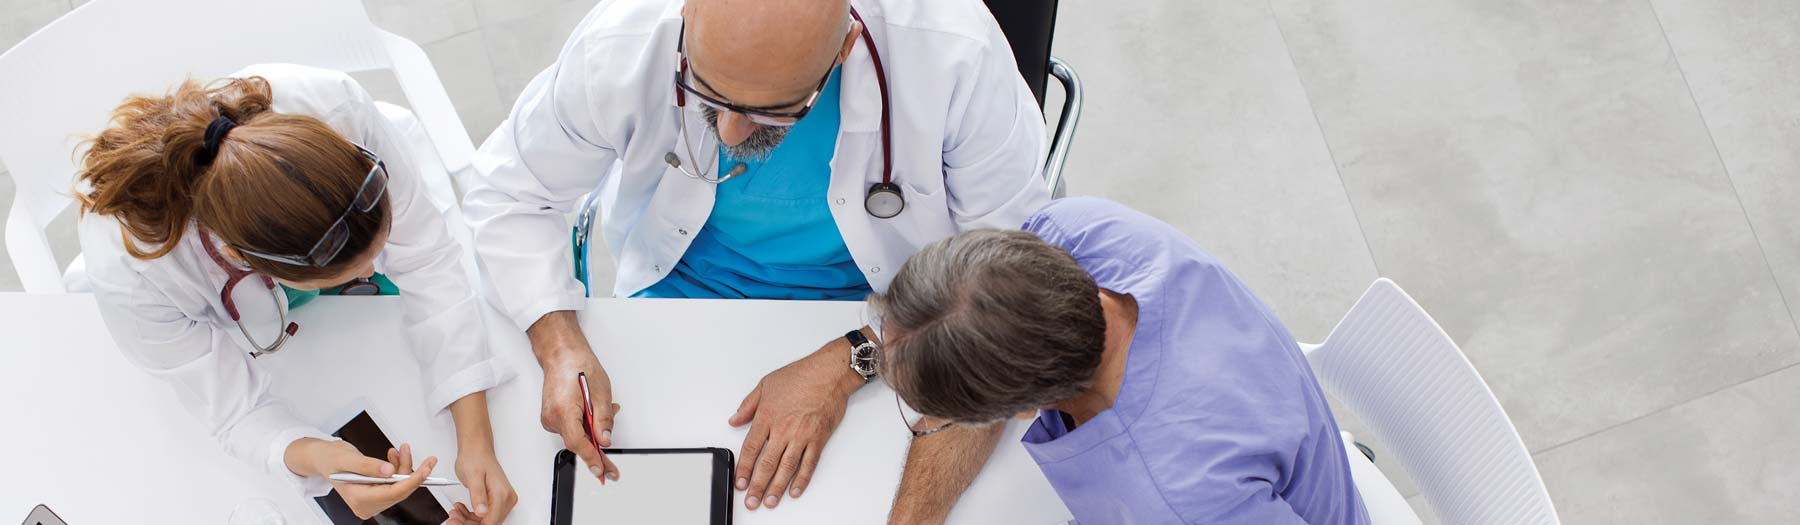 Doctors at Table looking at tablet